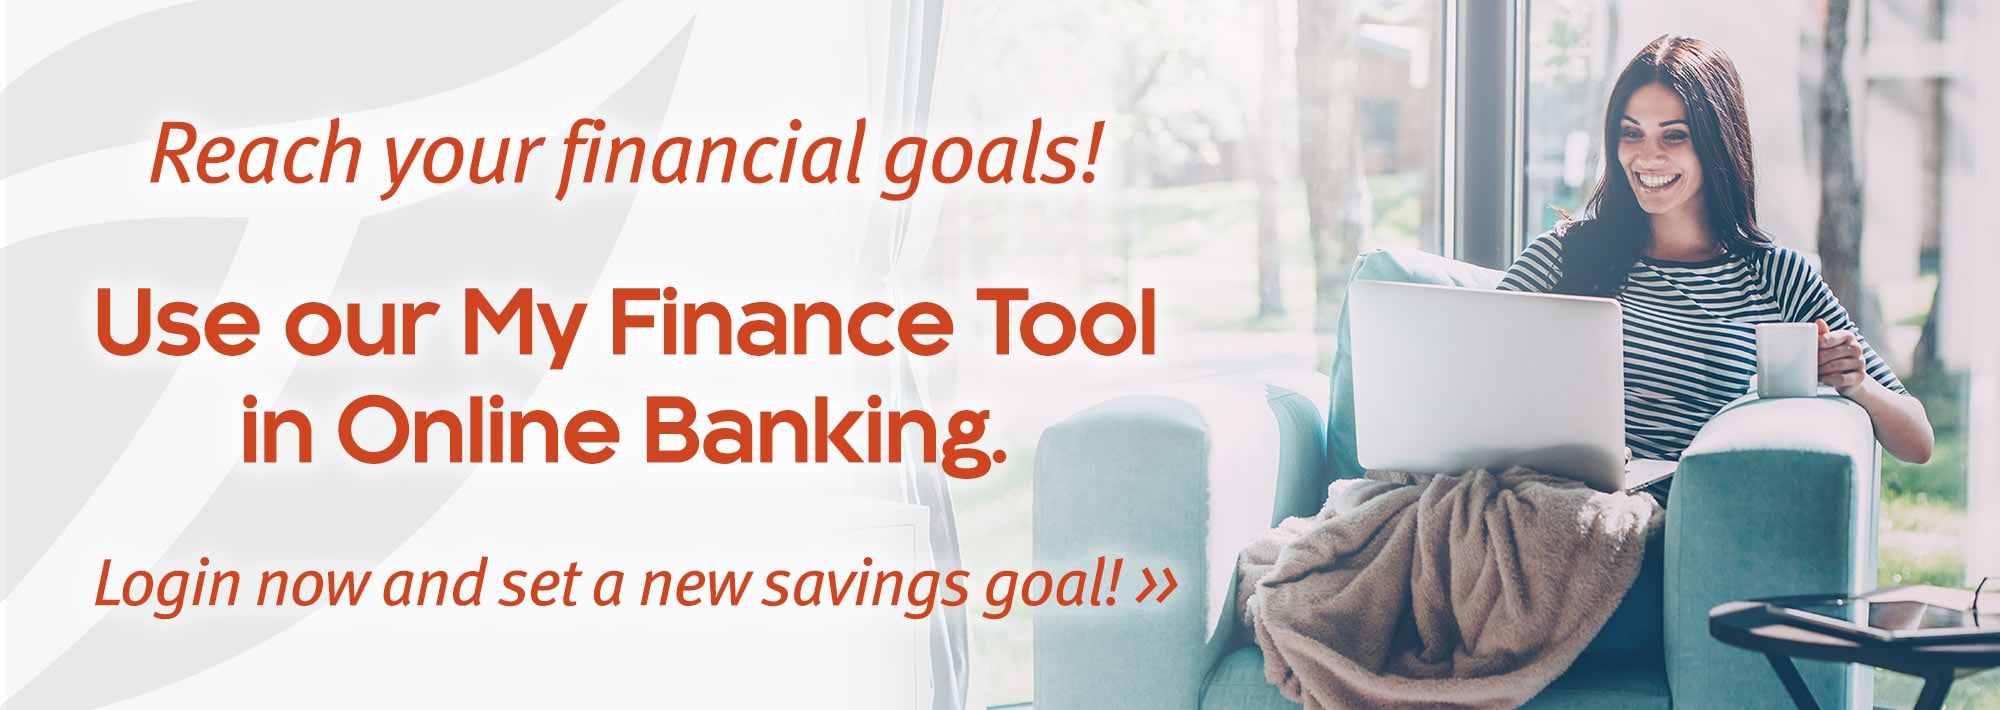 Reach your financial goals. Use our My Finance Tool in Online Banking. Login now and set a new savings goal.